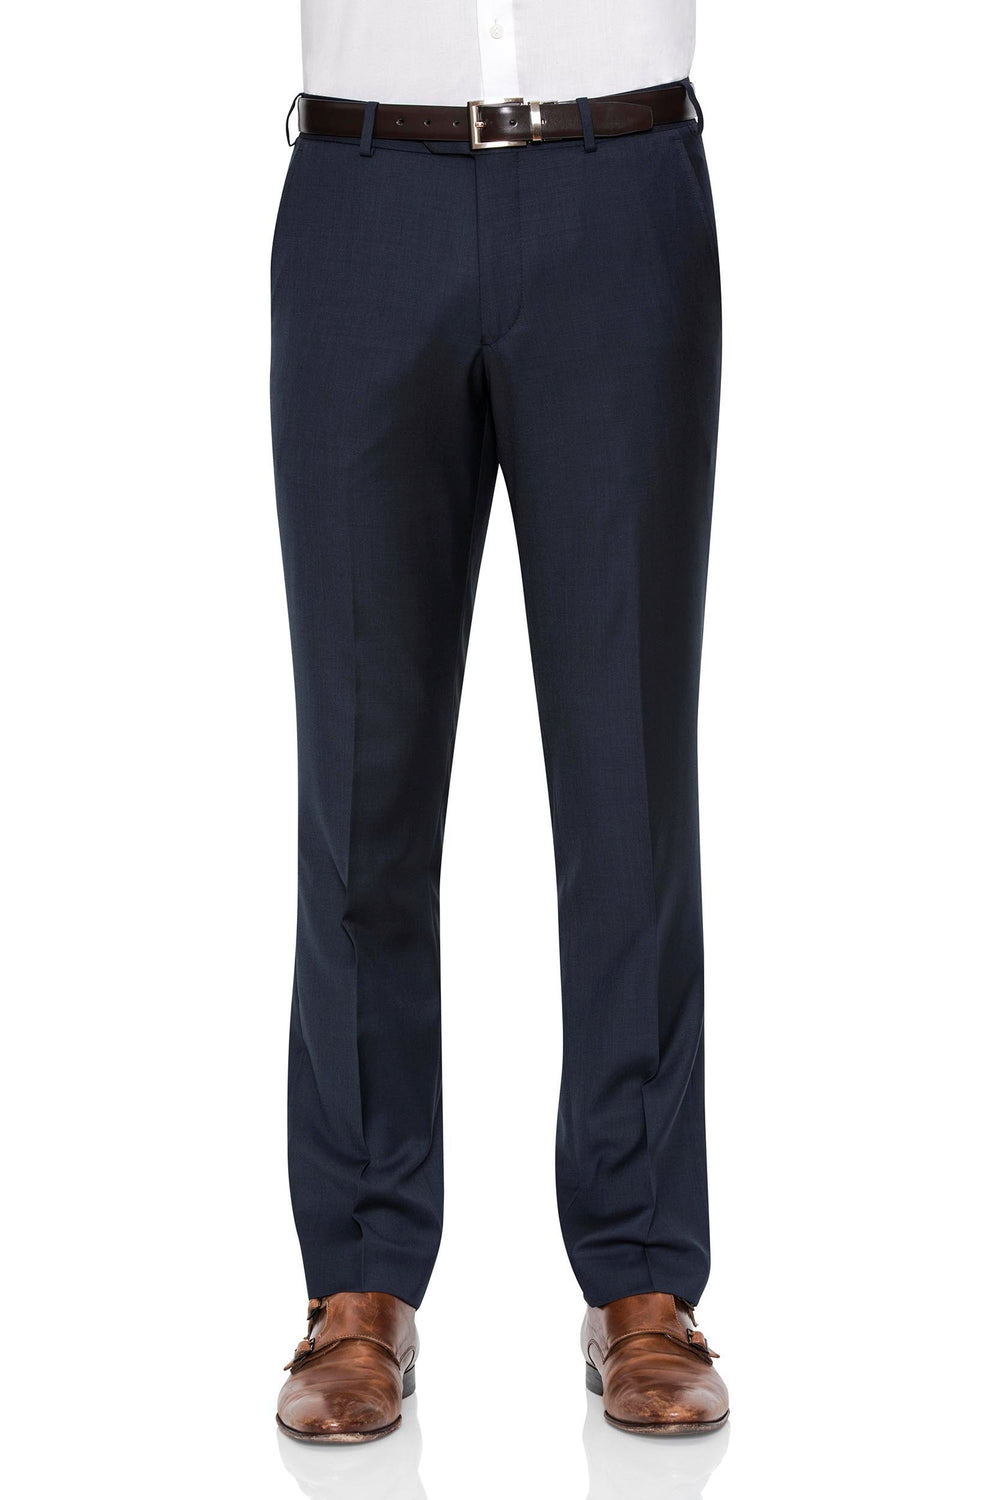 Cambridge Jett F2042 Dress Trouser